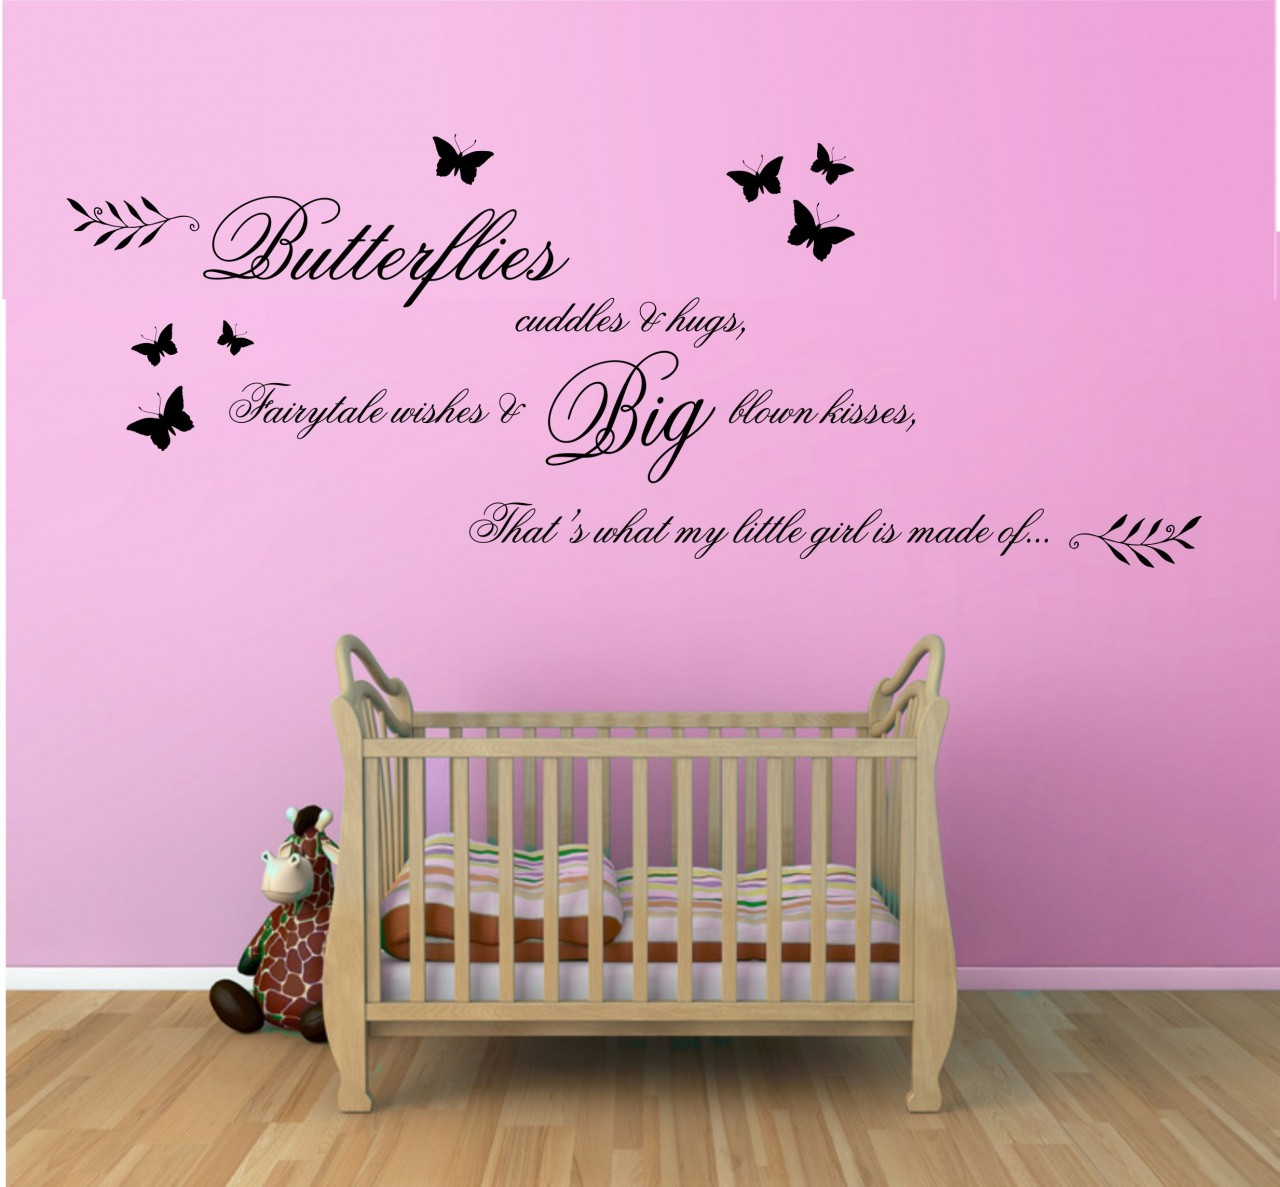 Wall mural quotes quotesgram for Butterfly wall mural stickers